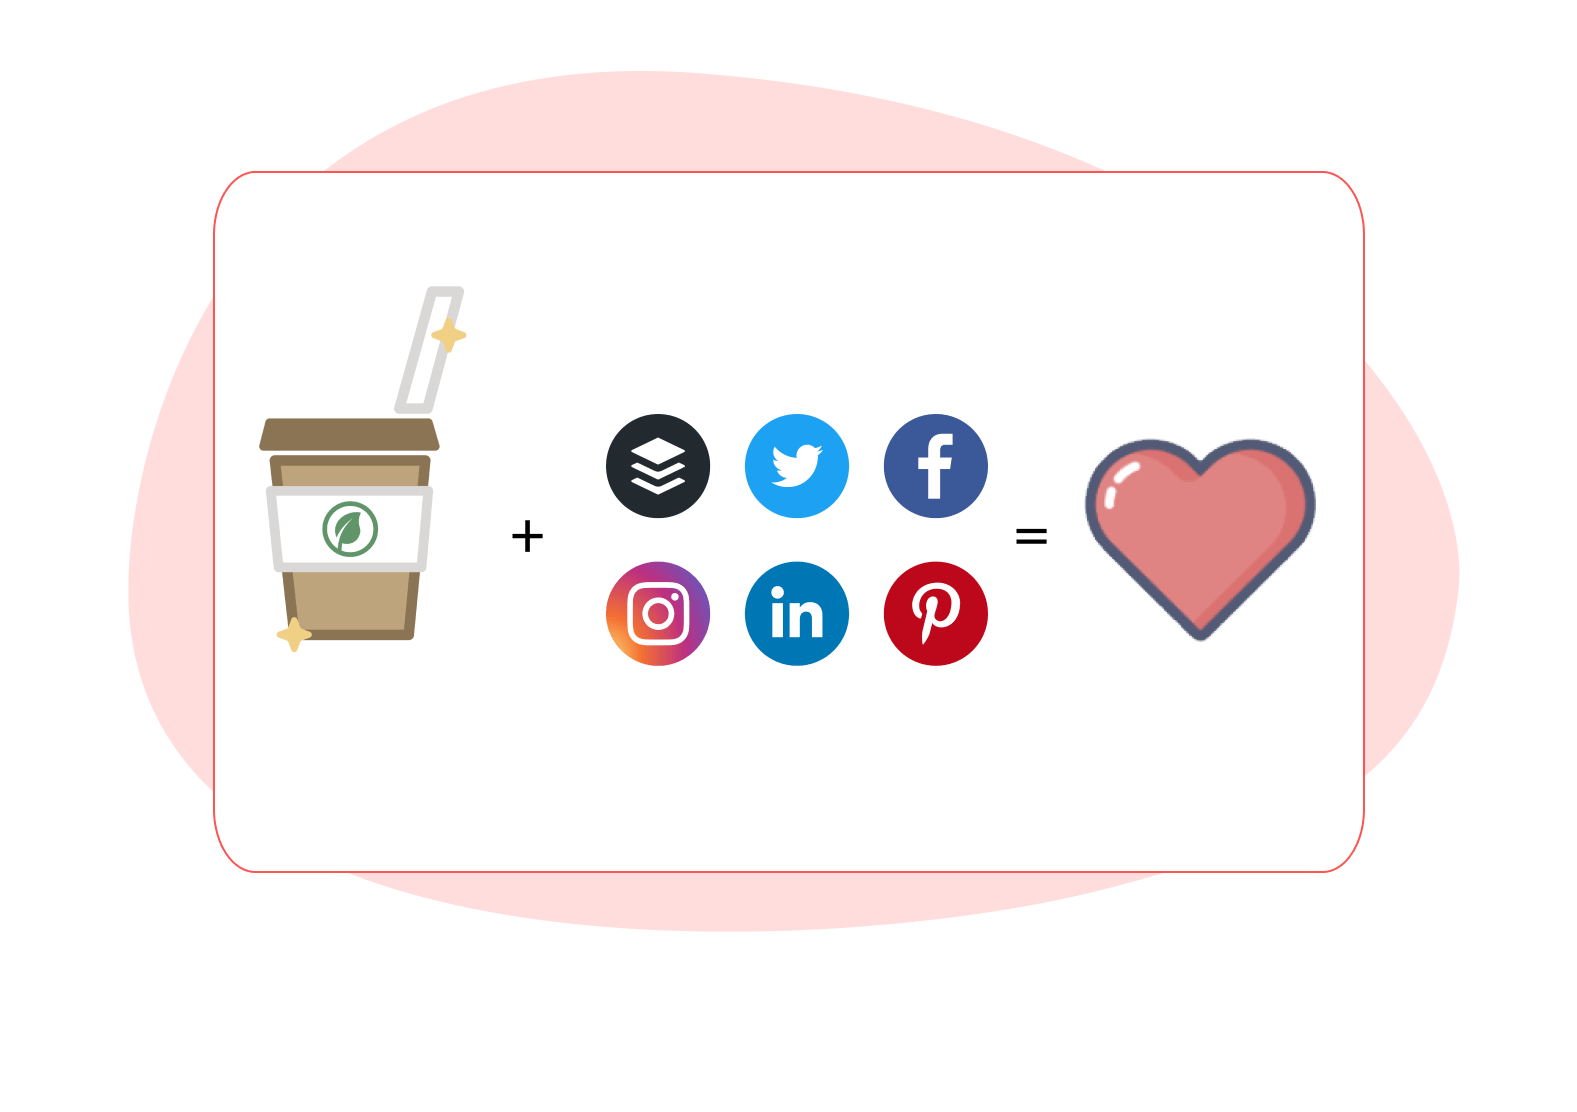 Step 1: Connect your social accounts